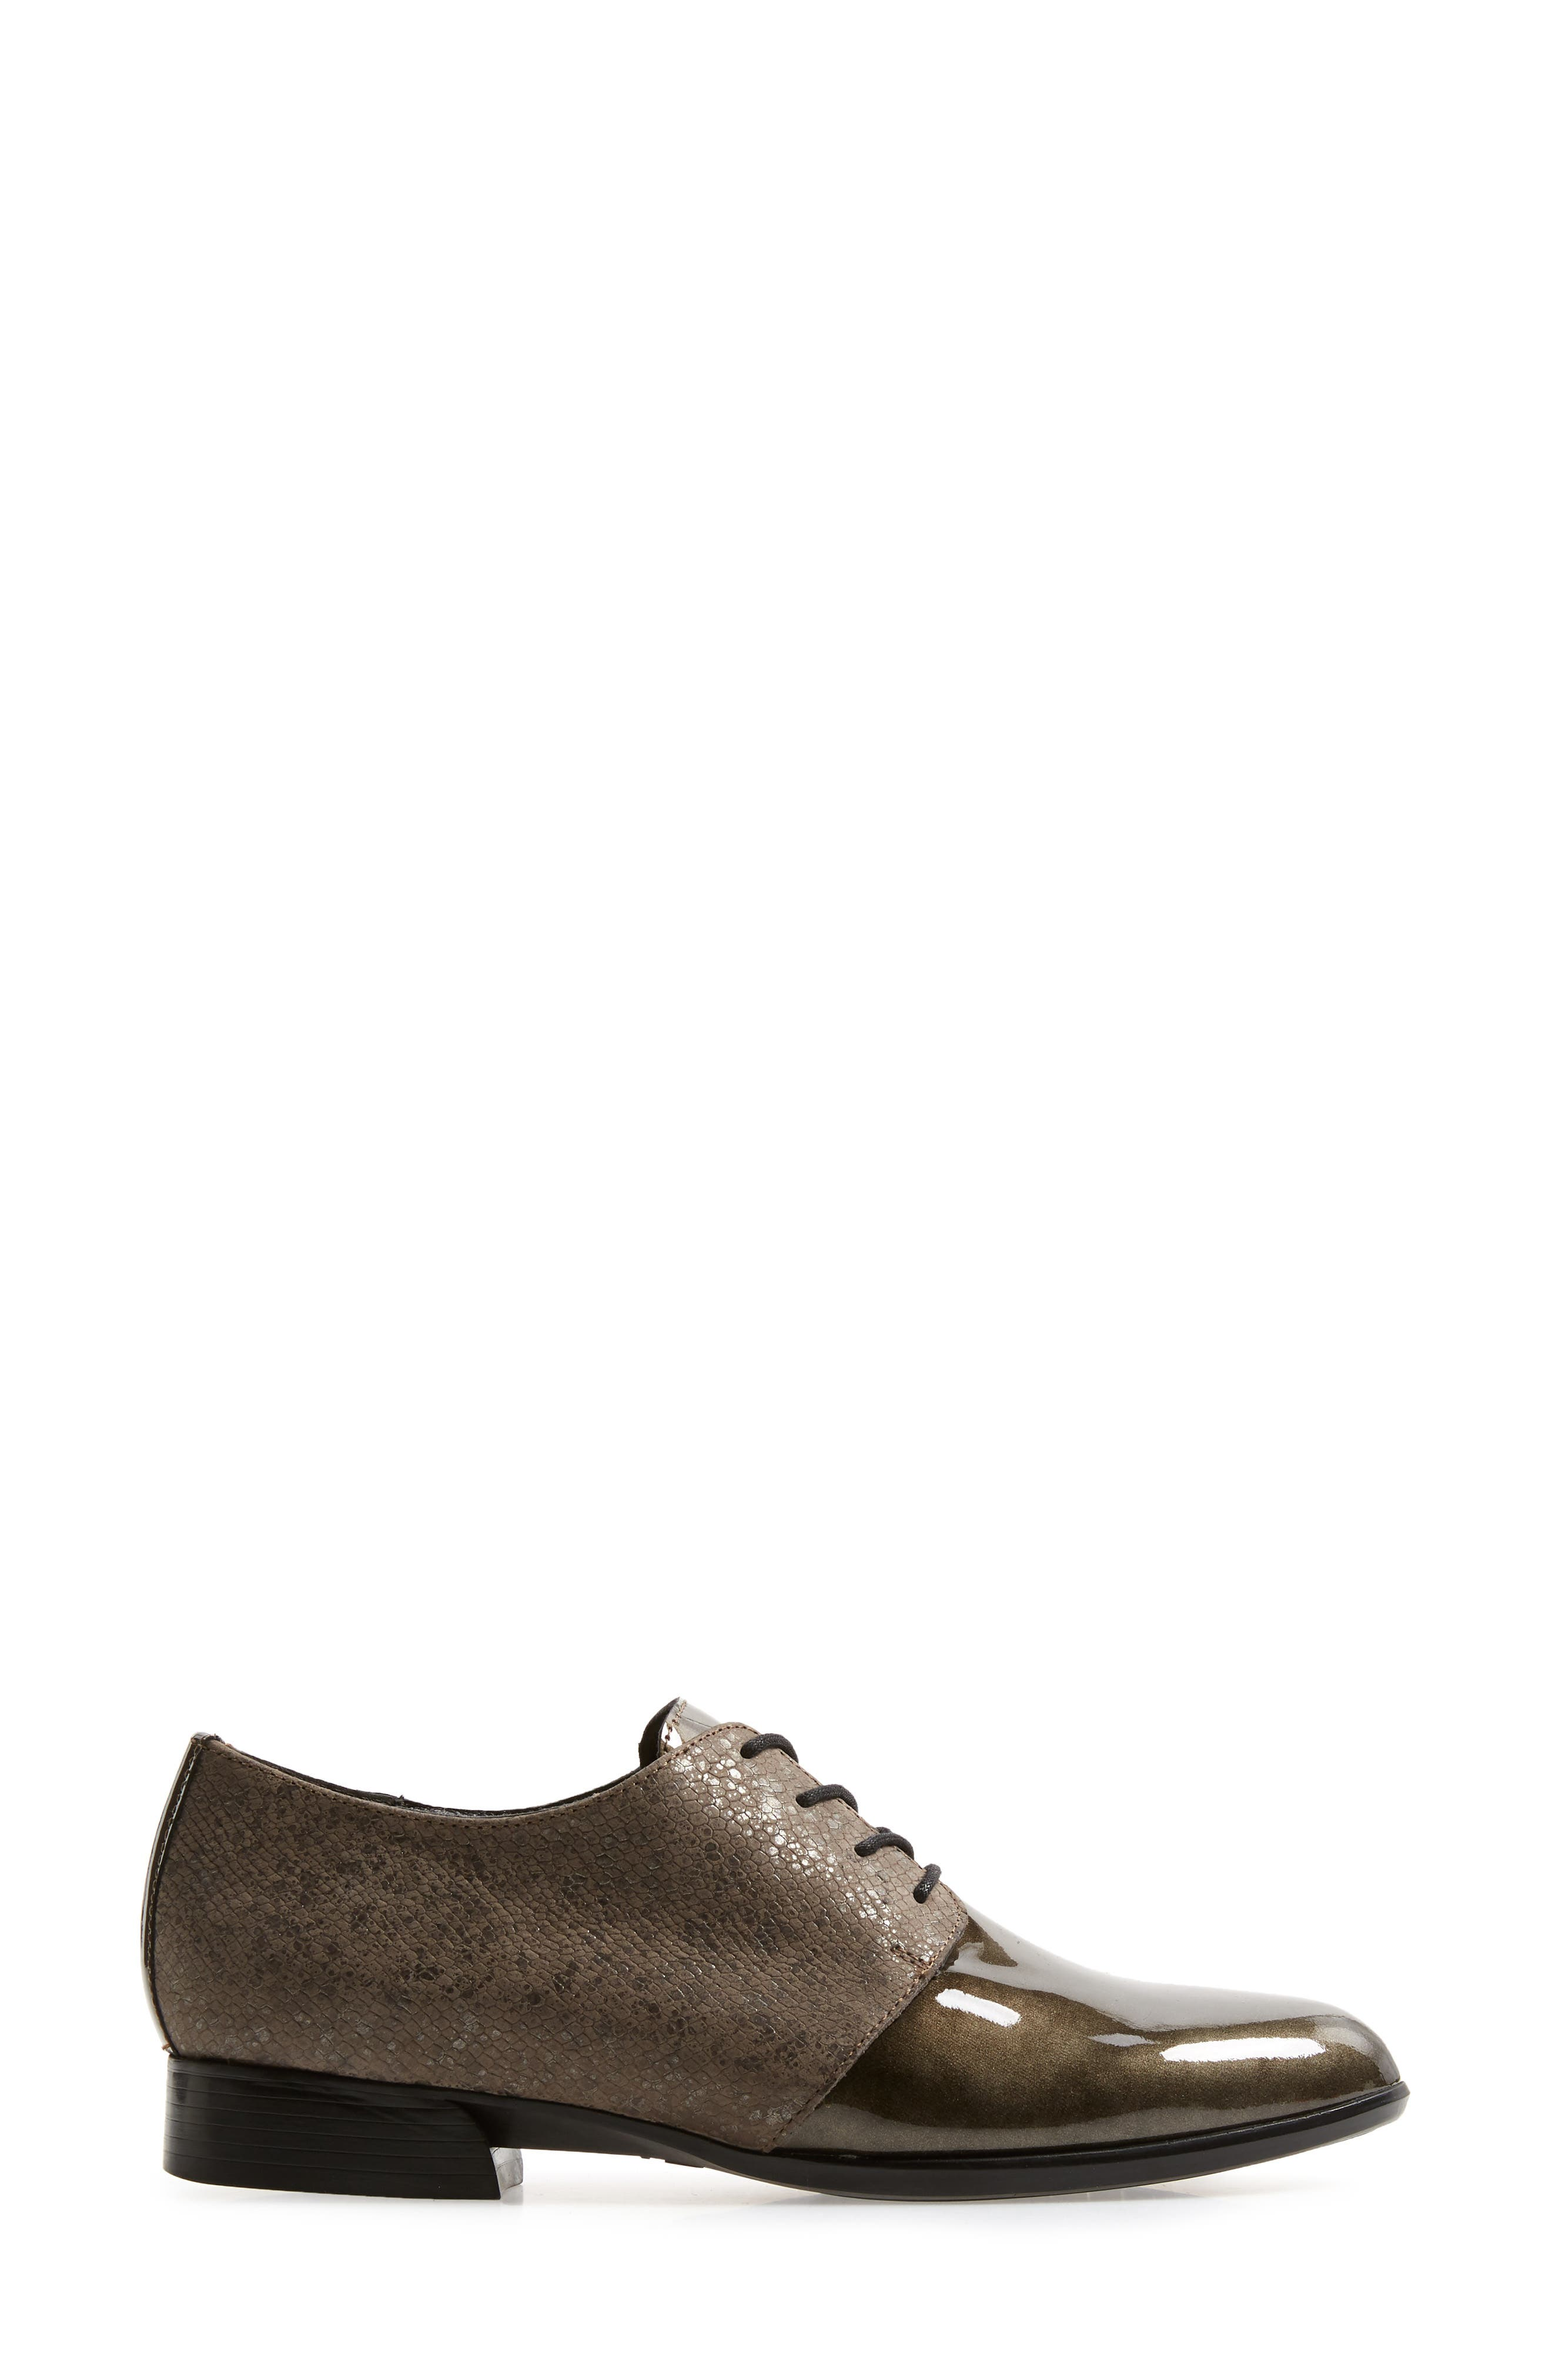 MUNRO, Markella Derby, Alternate thumbnail 3, color, GREY PATENT LEATHER